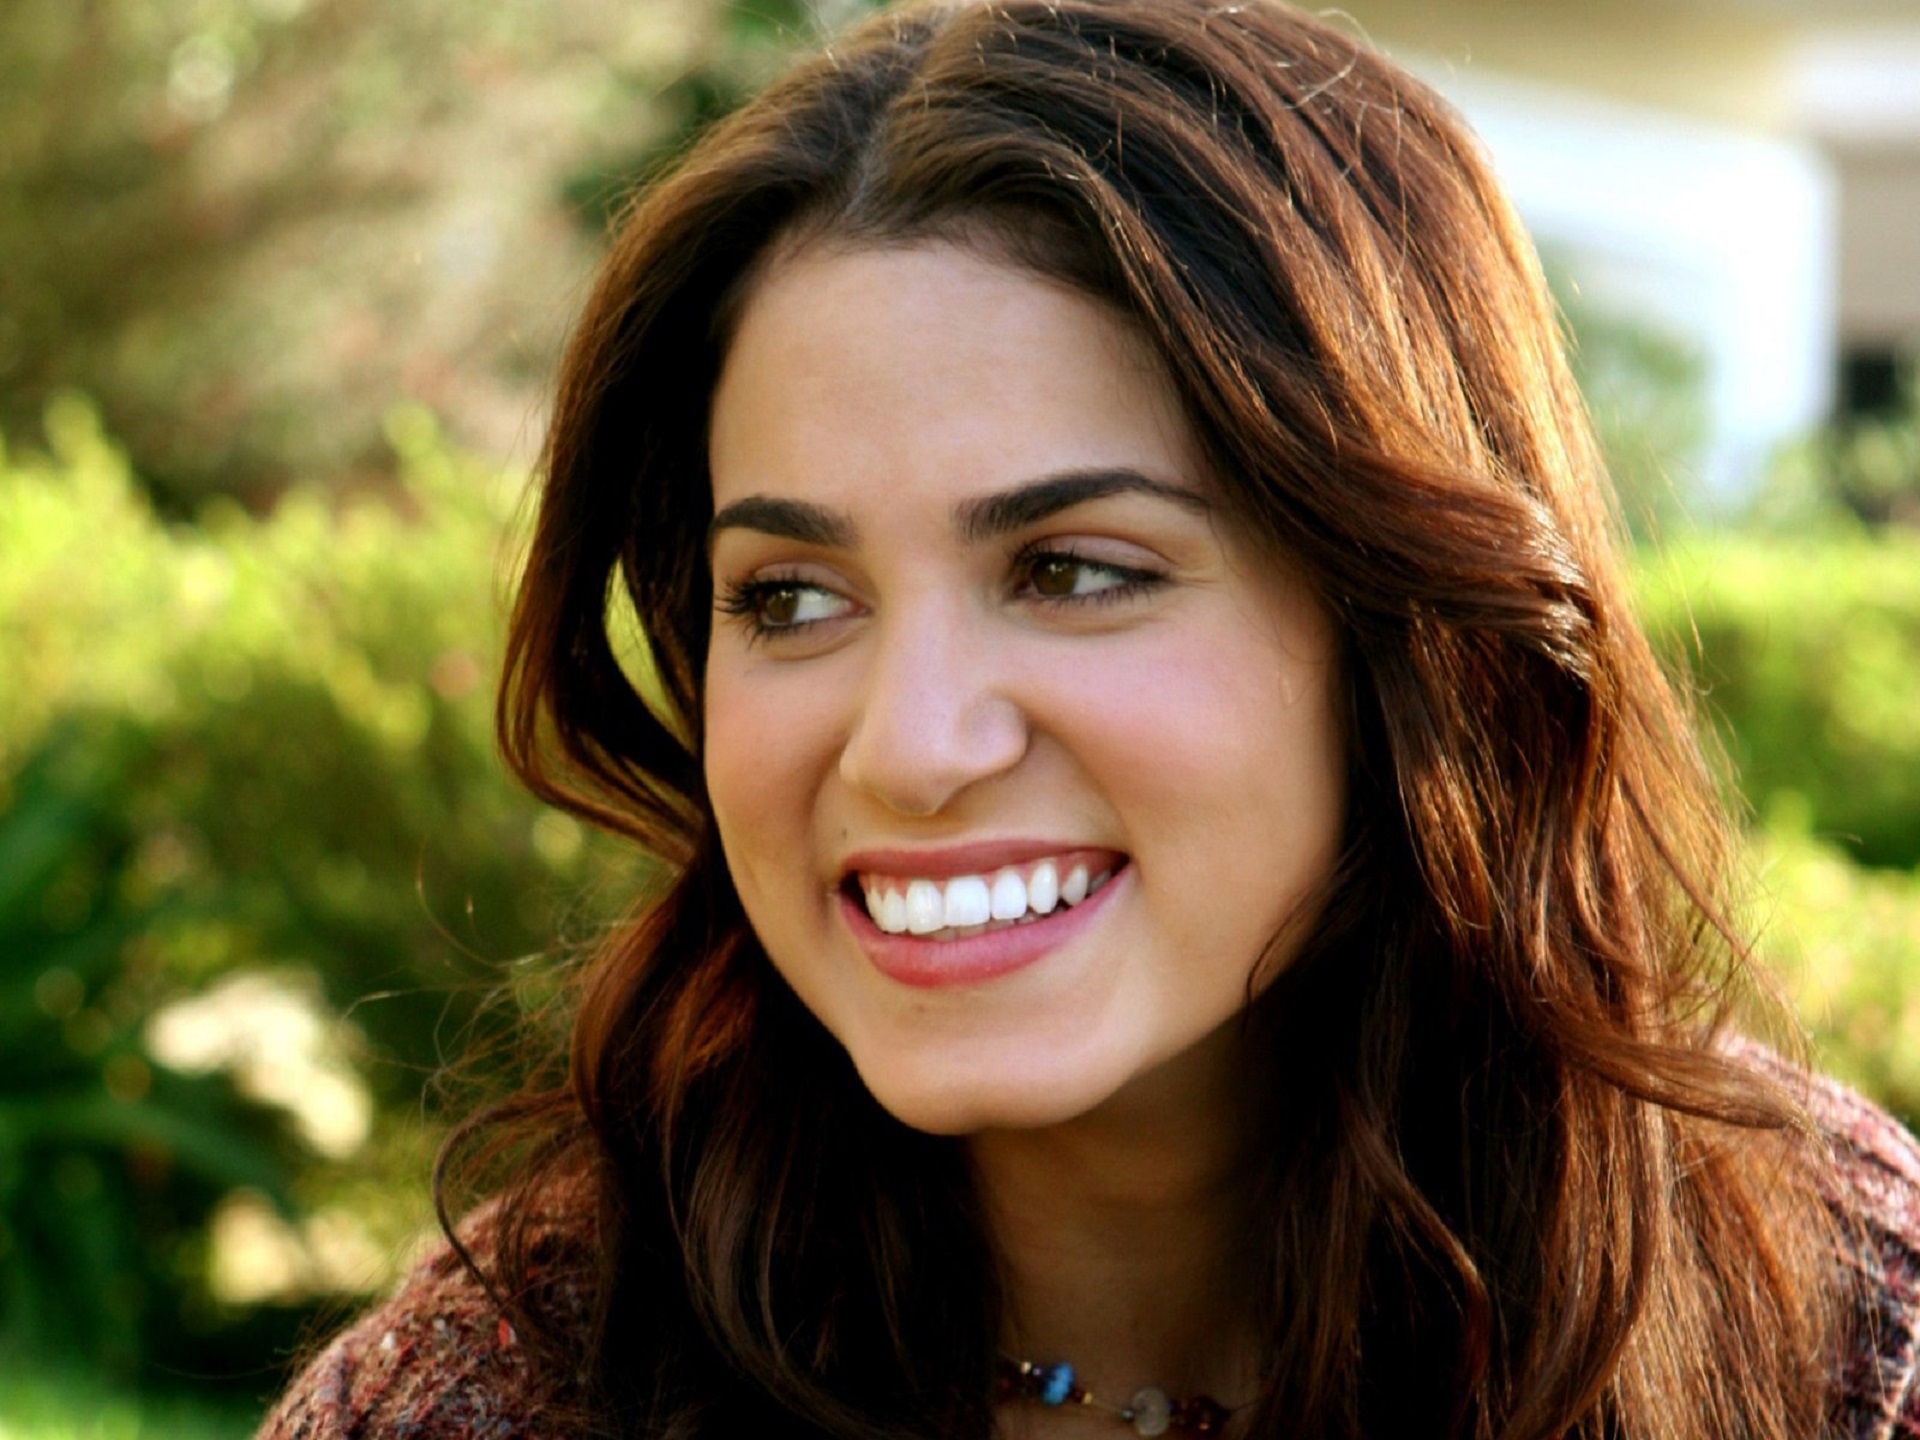 Nikki Reed Wallpapers Images Photos Pictures Backgrounds